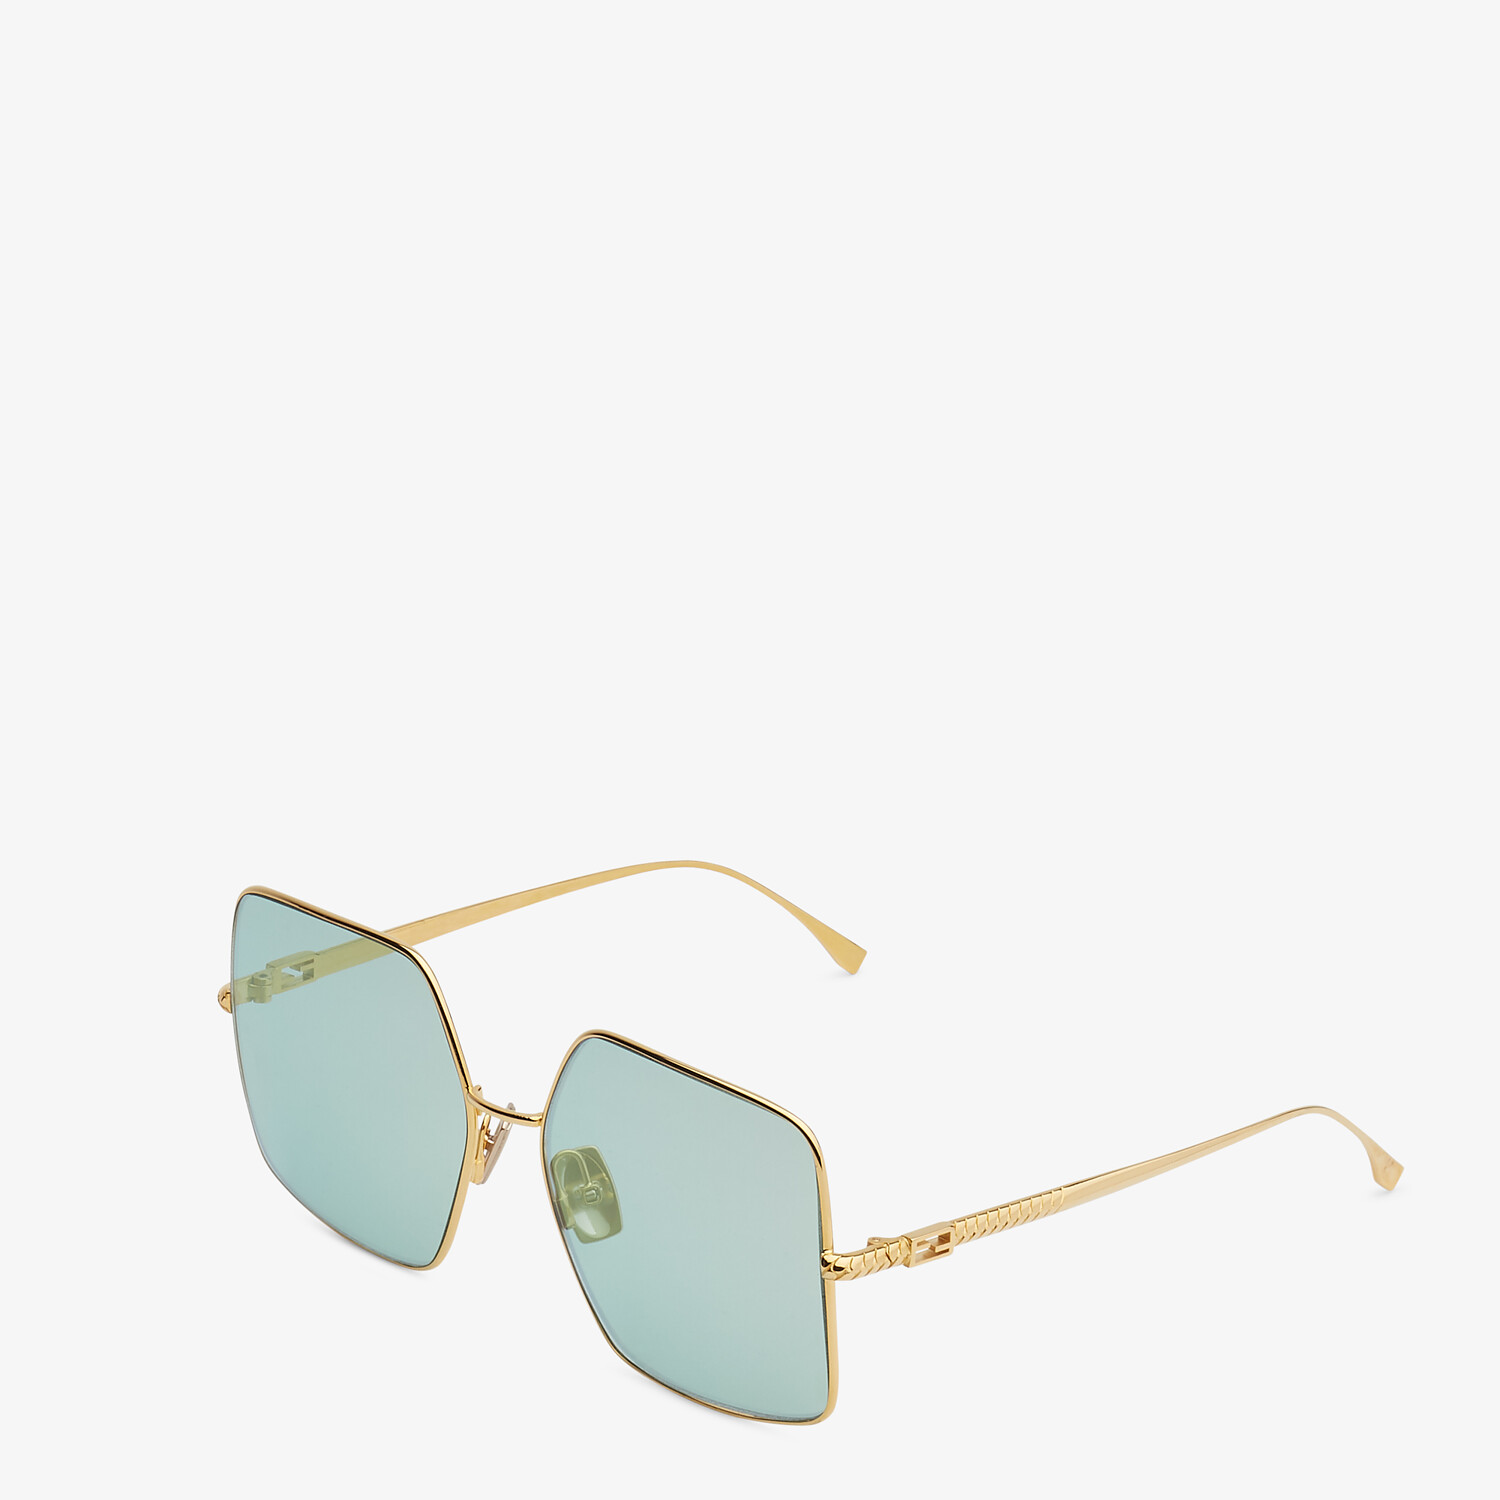 FENDI BAGUETTE - Gold-colored sunglasses - view 2 detail